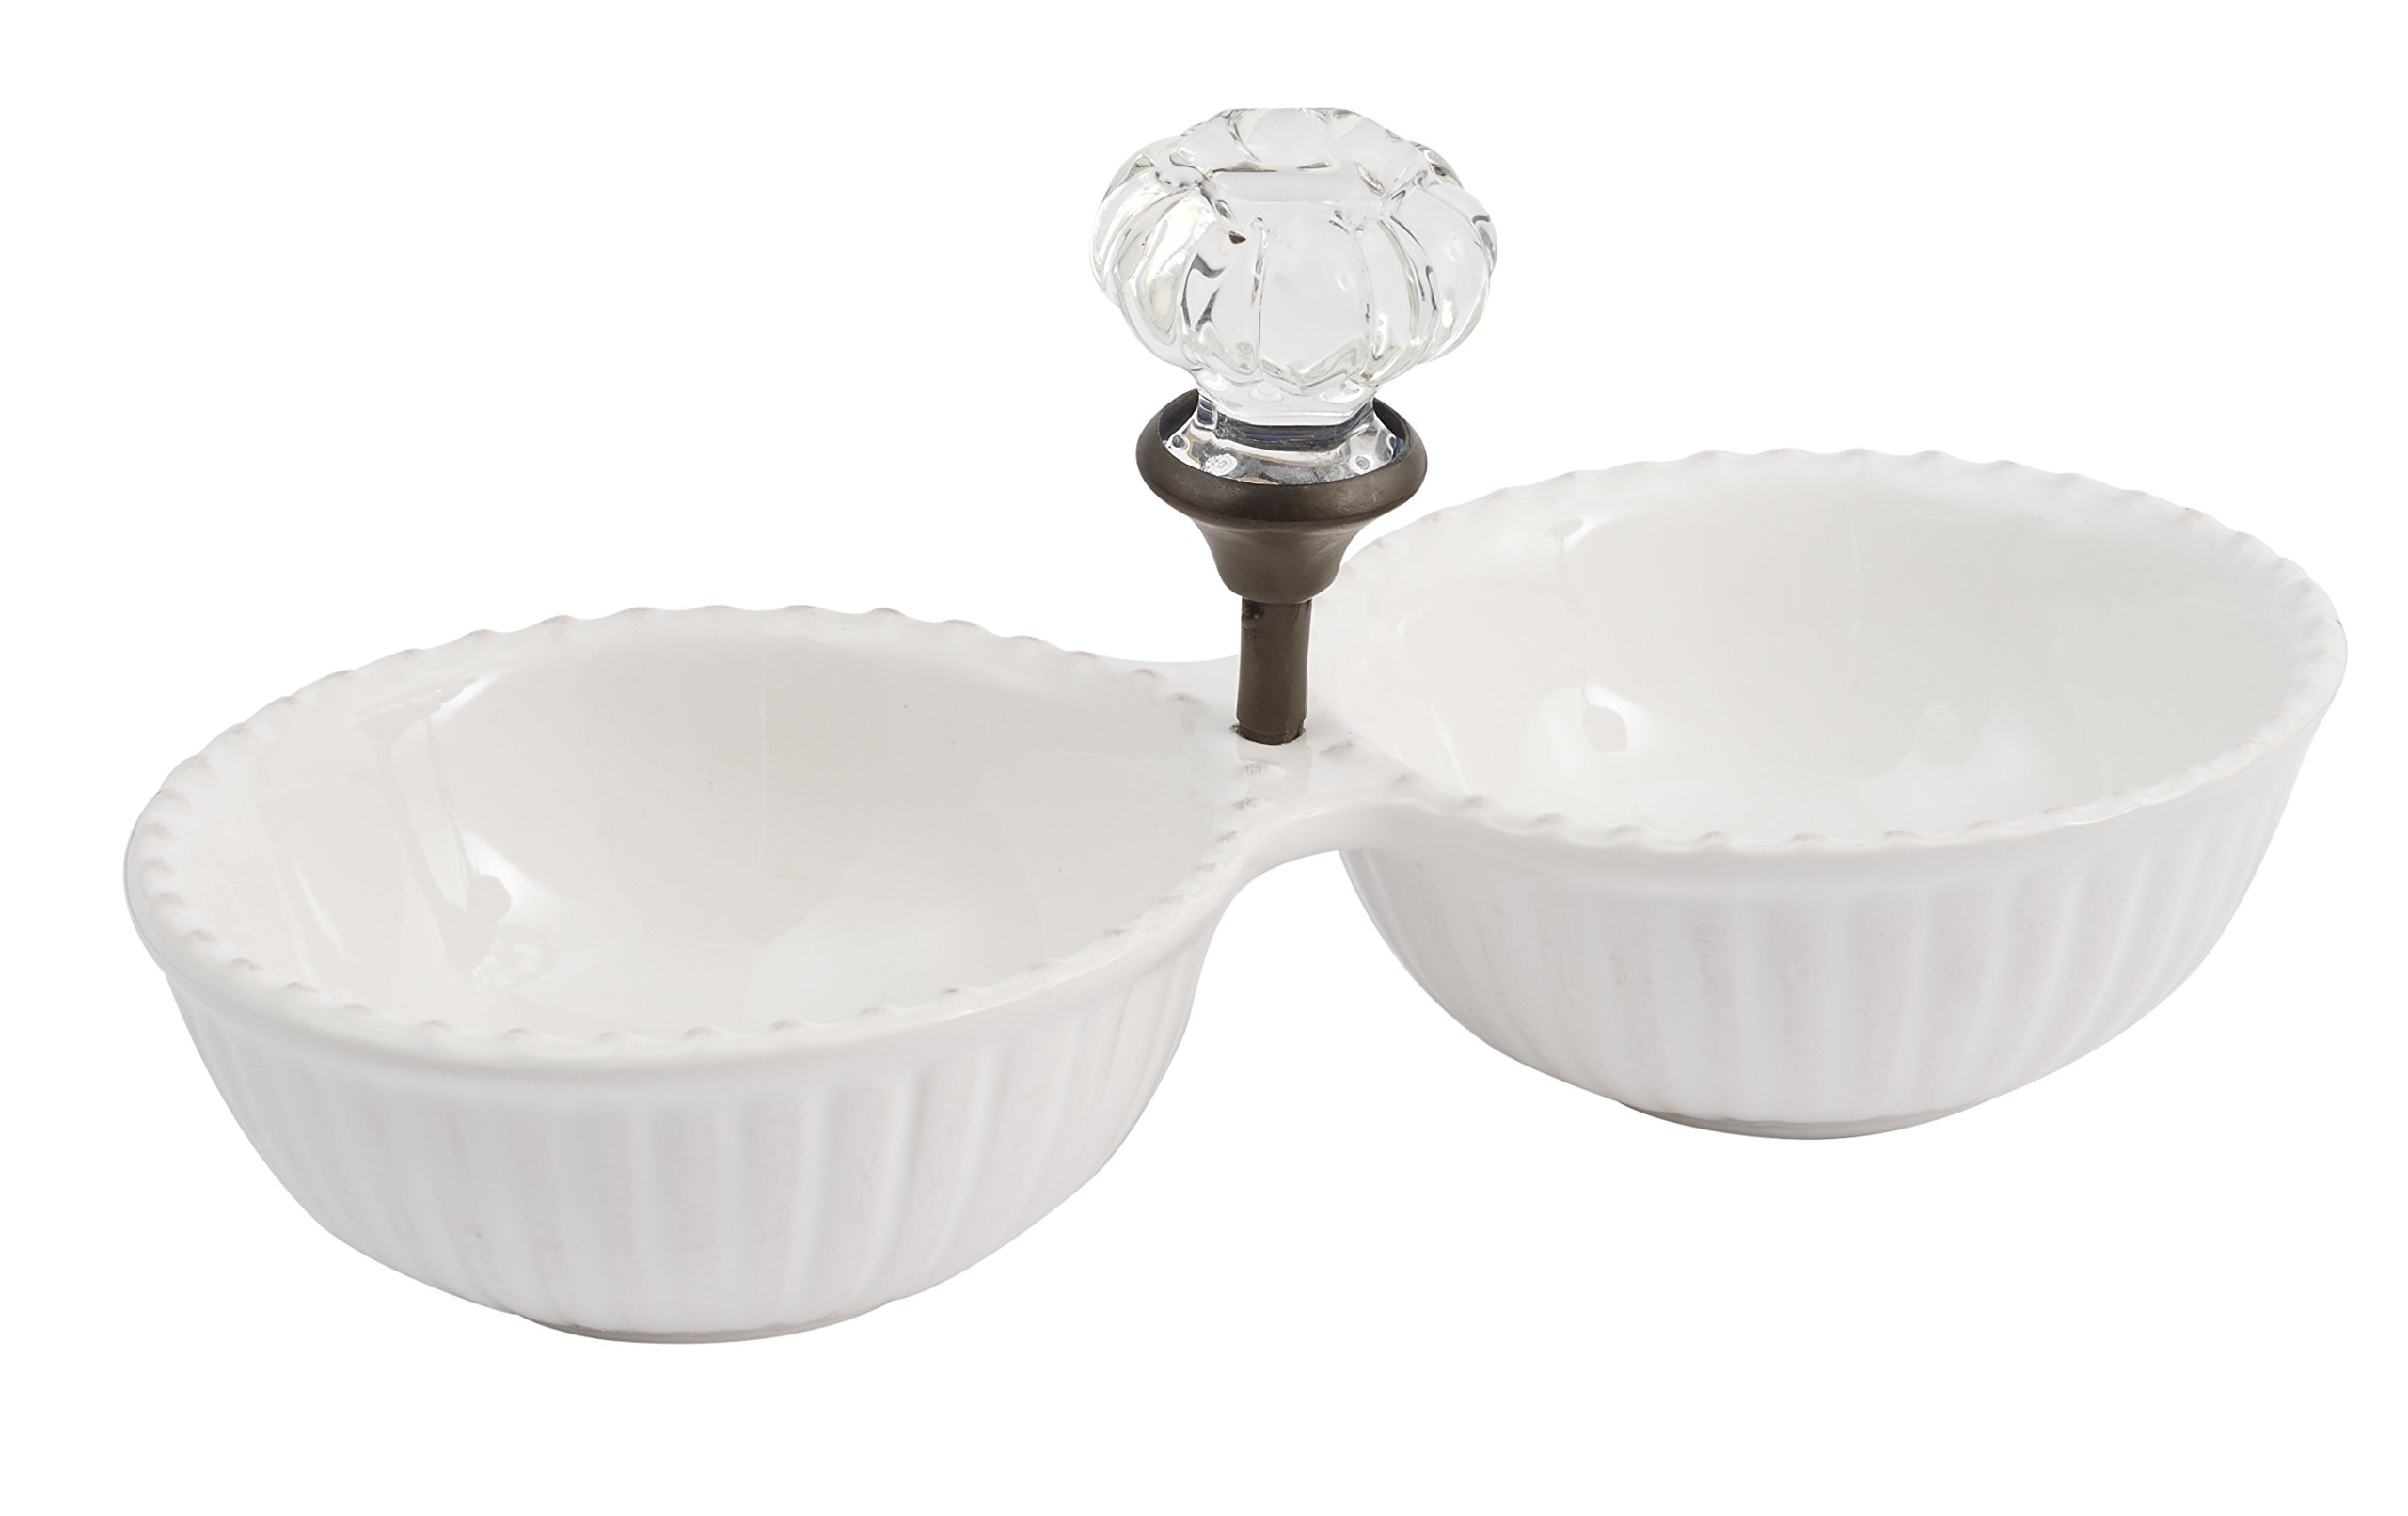 Mud Pie Door Knob Double Dip Dish, White by Mud Pie